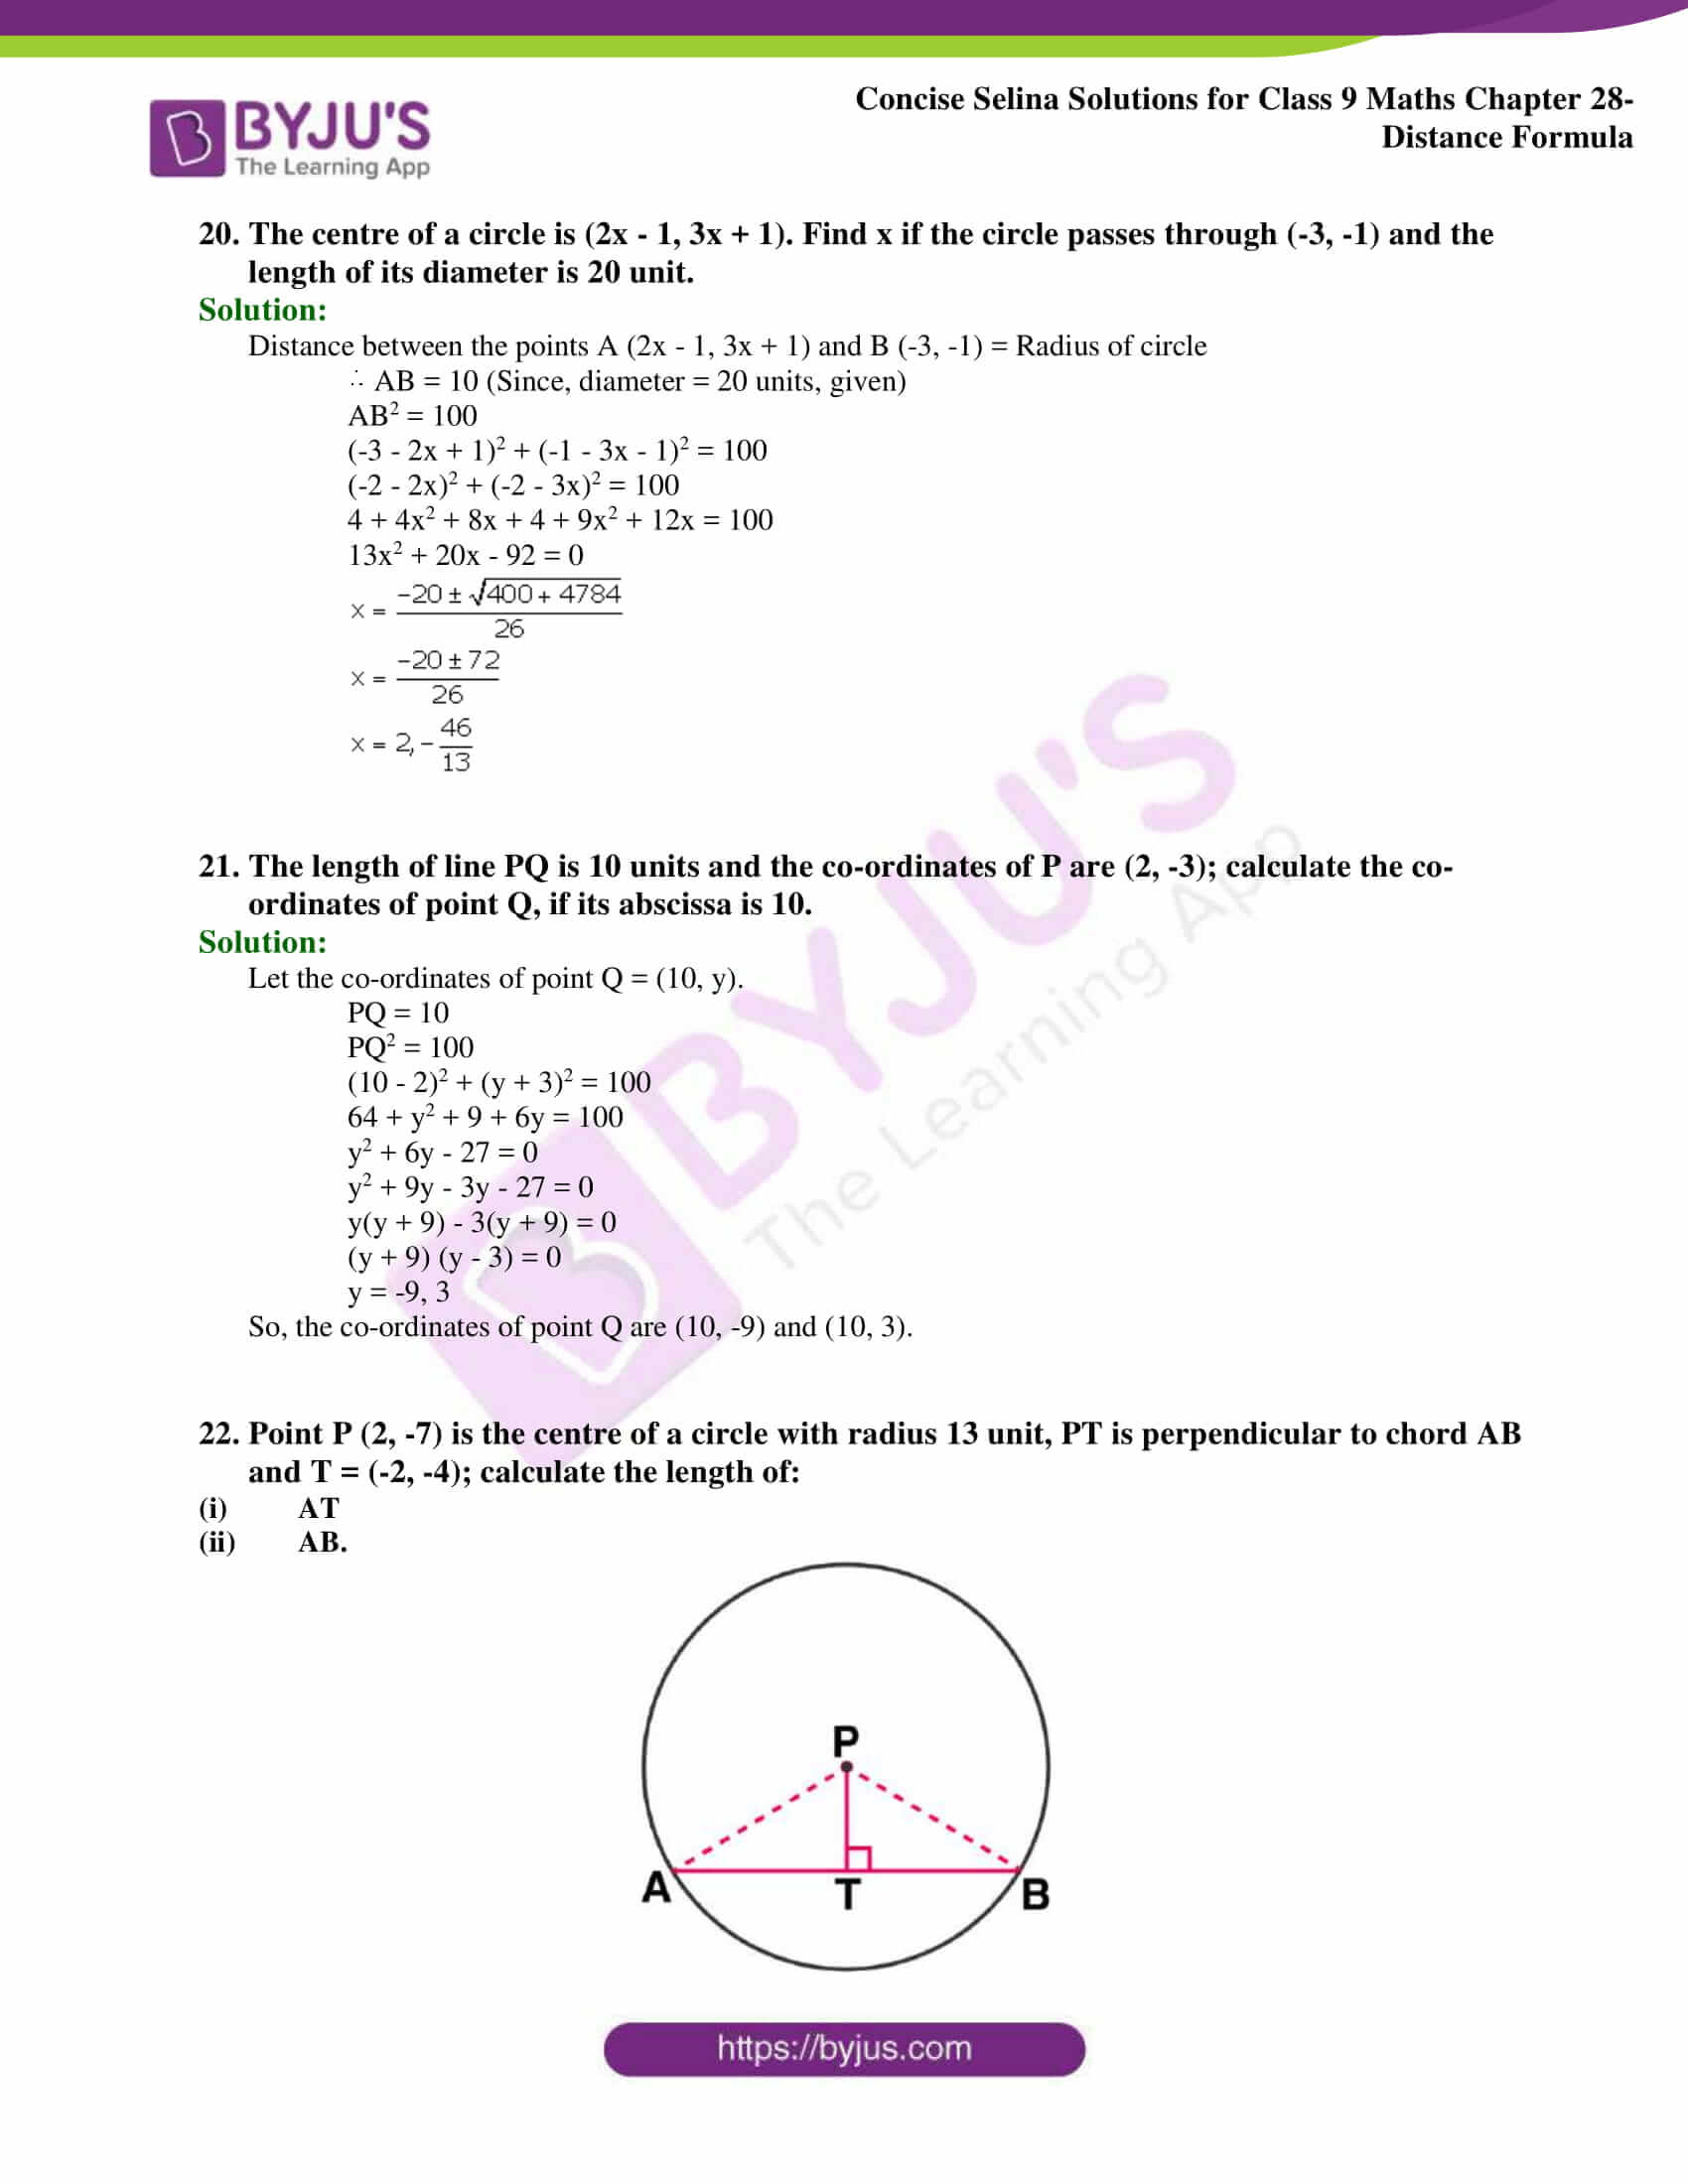 Concise Selina Solutions Class 9 Maths Chapter 28 Distance Formula part 09